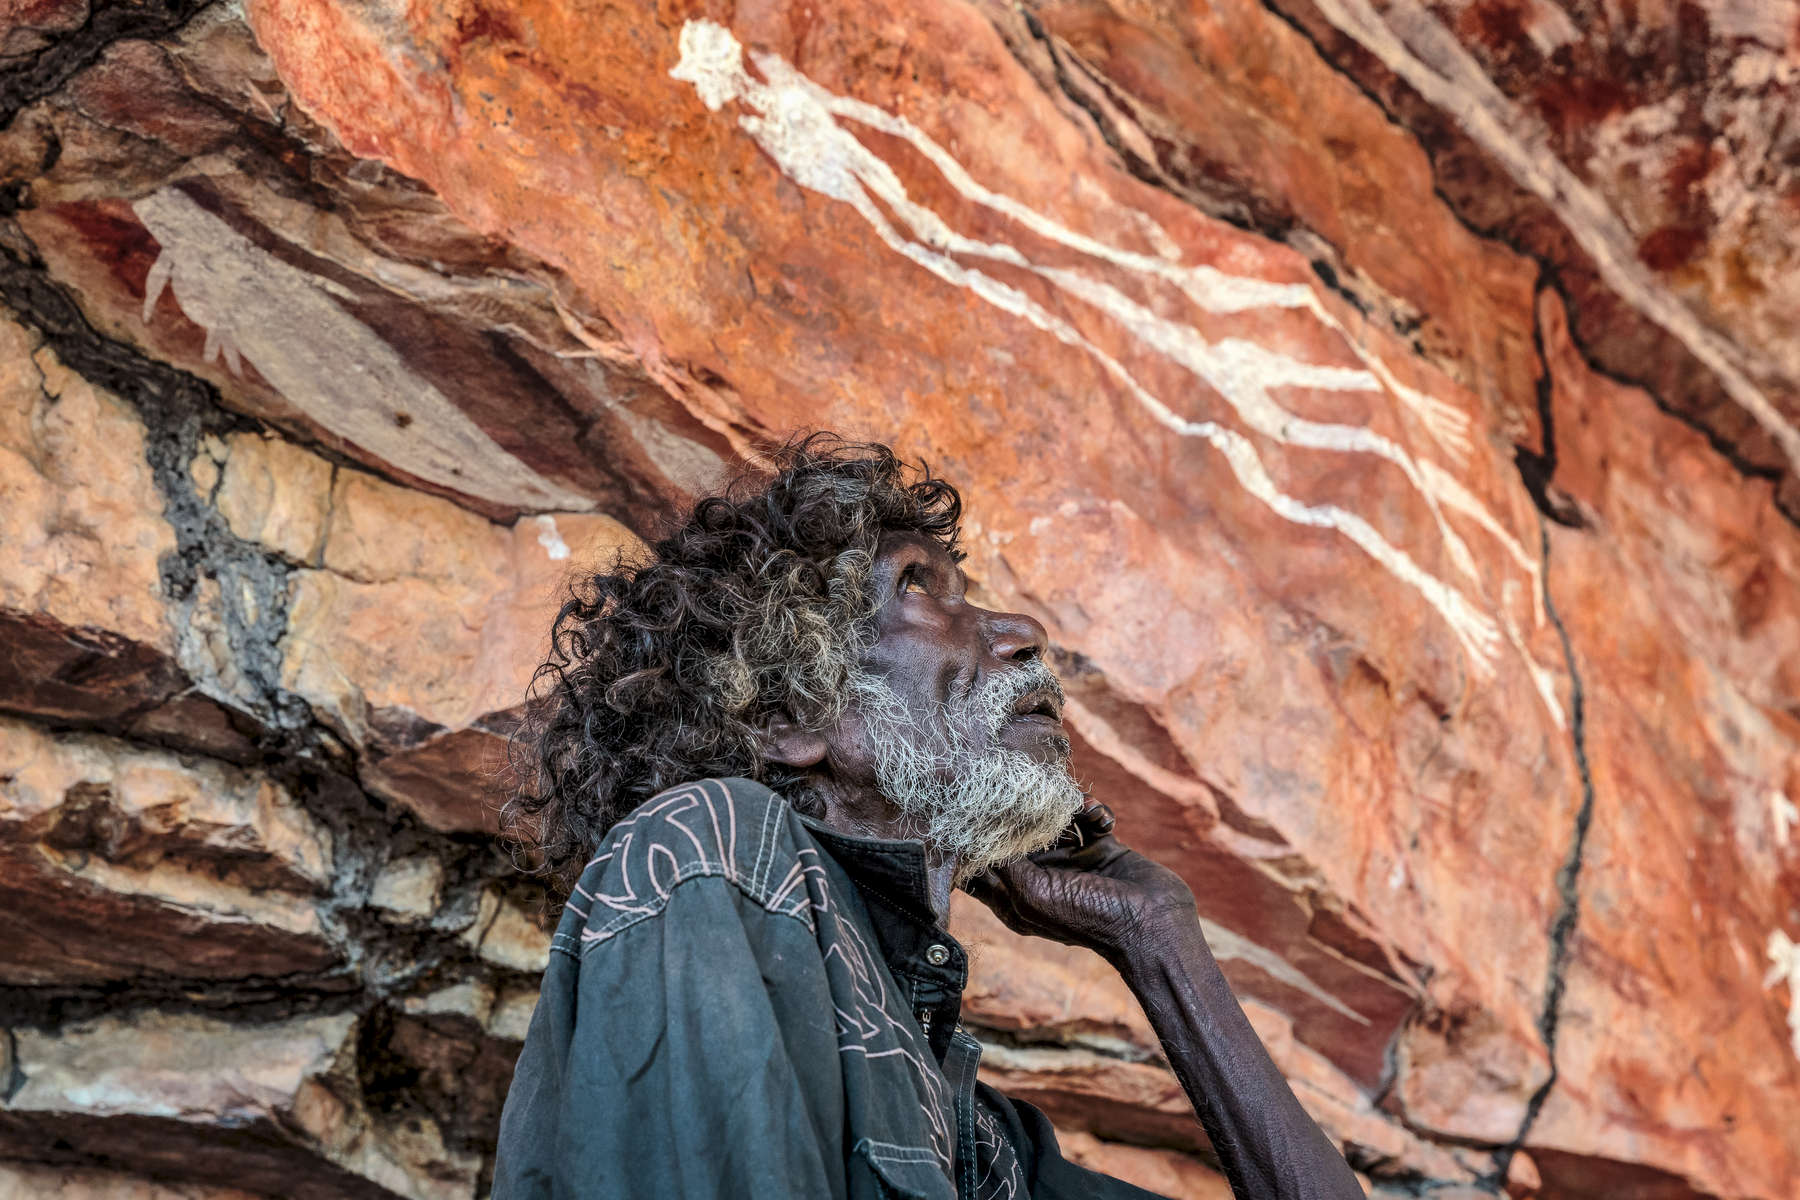 Tom Noytuna, one of the last hunter gathers in Arnhem Land, at a rock art site named Dukaladjarranj.  Many of the paintings here were created by Tom's father, Mandarg